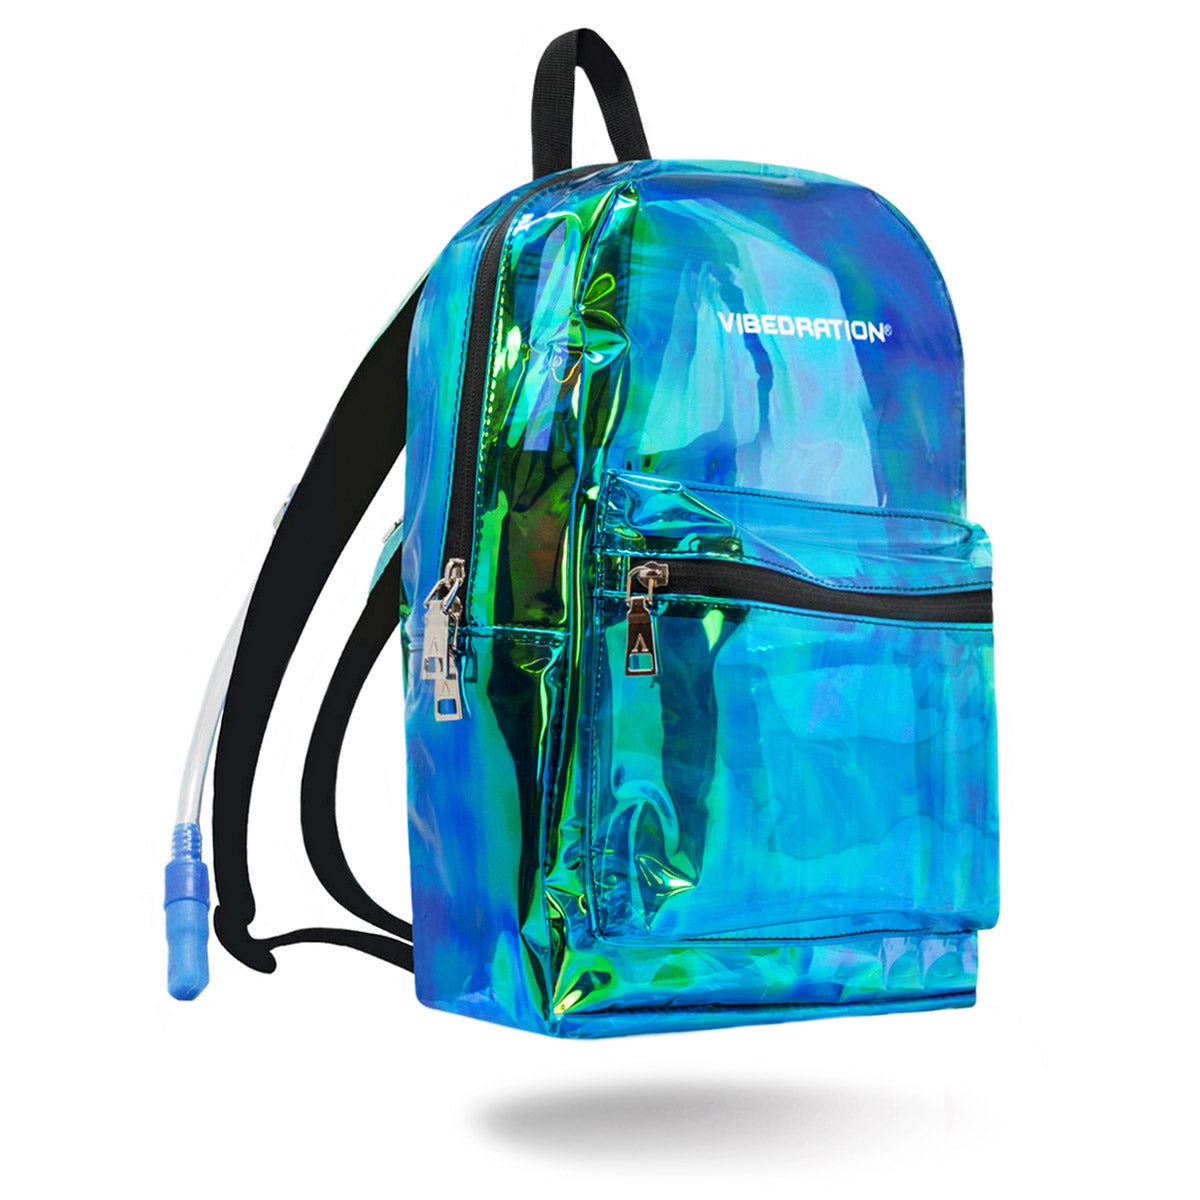 2d6350ec9b Clear Rave Backpack by VIBEDRATION - 1.5 Liter Water Capacity